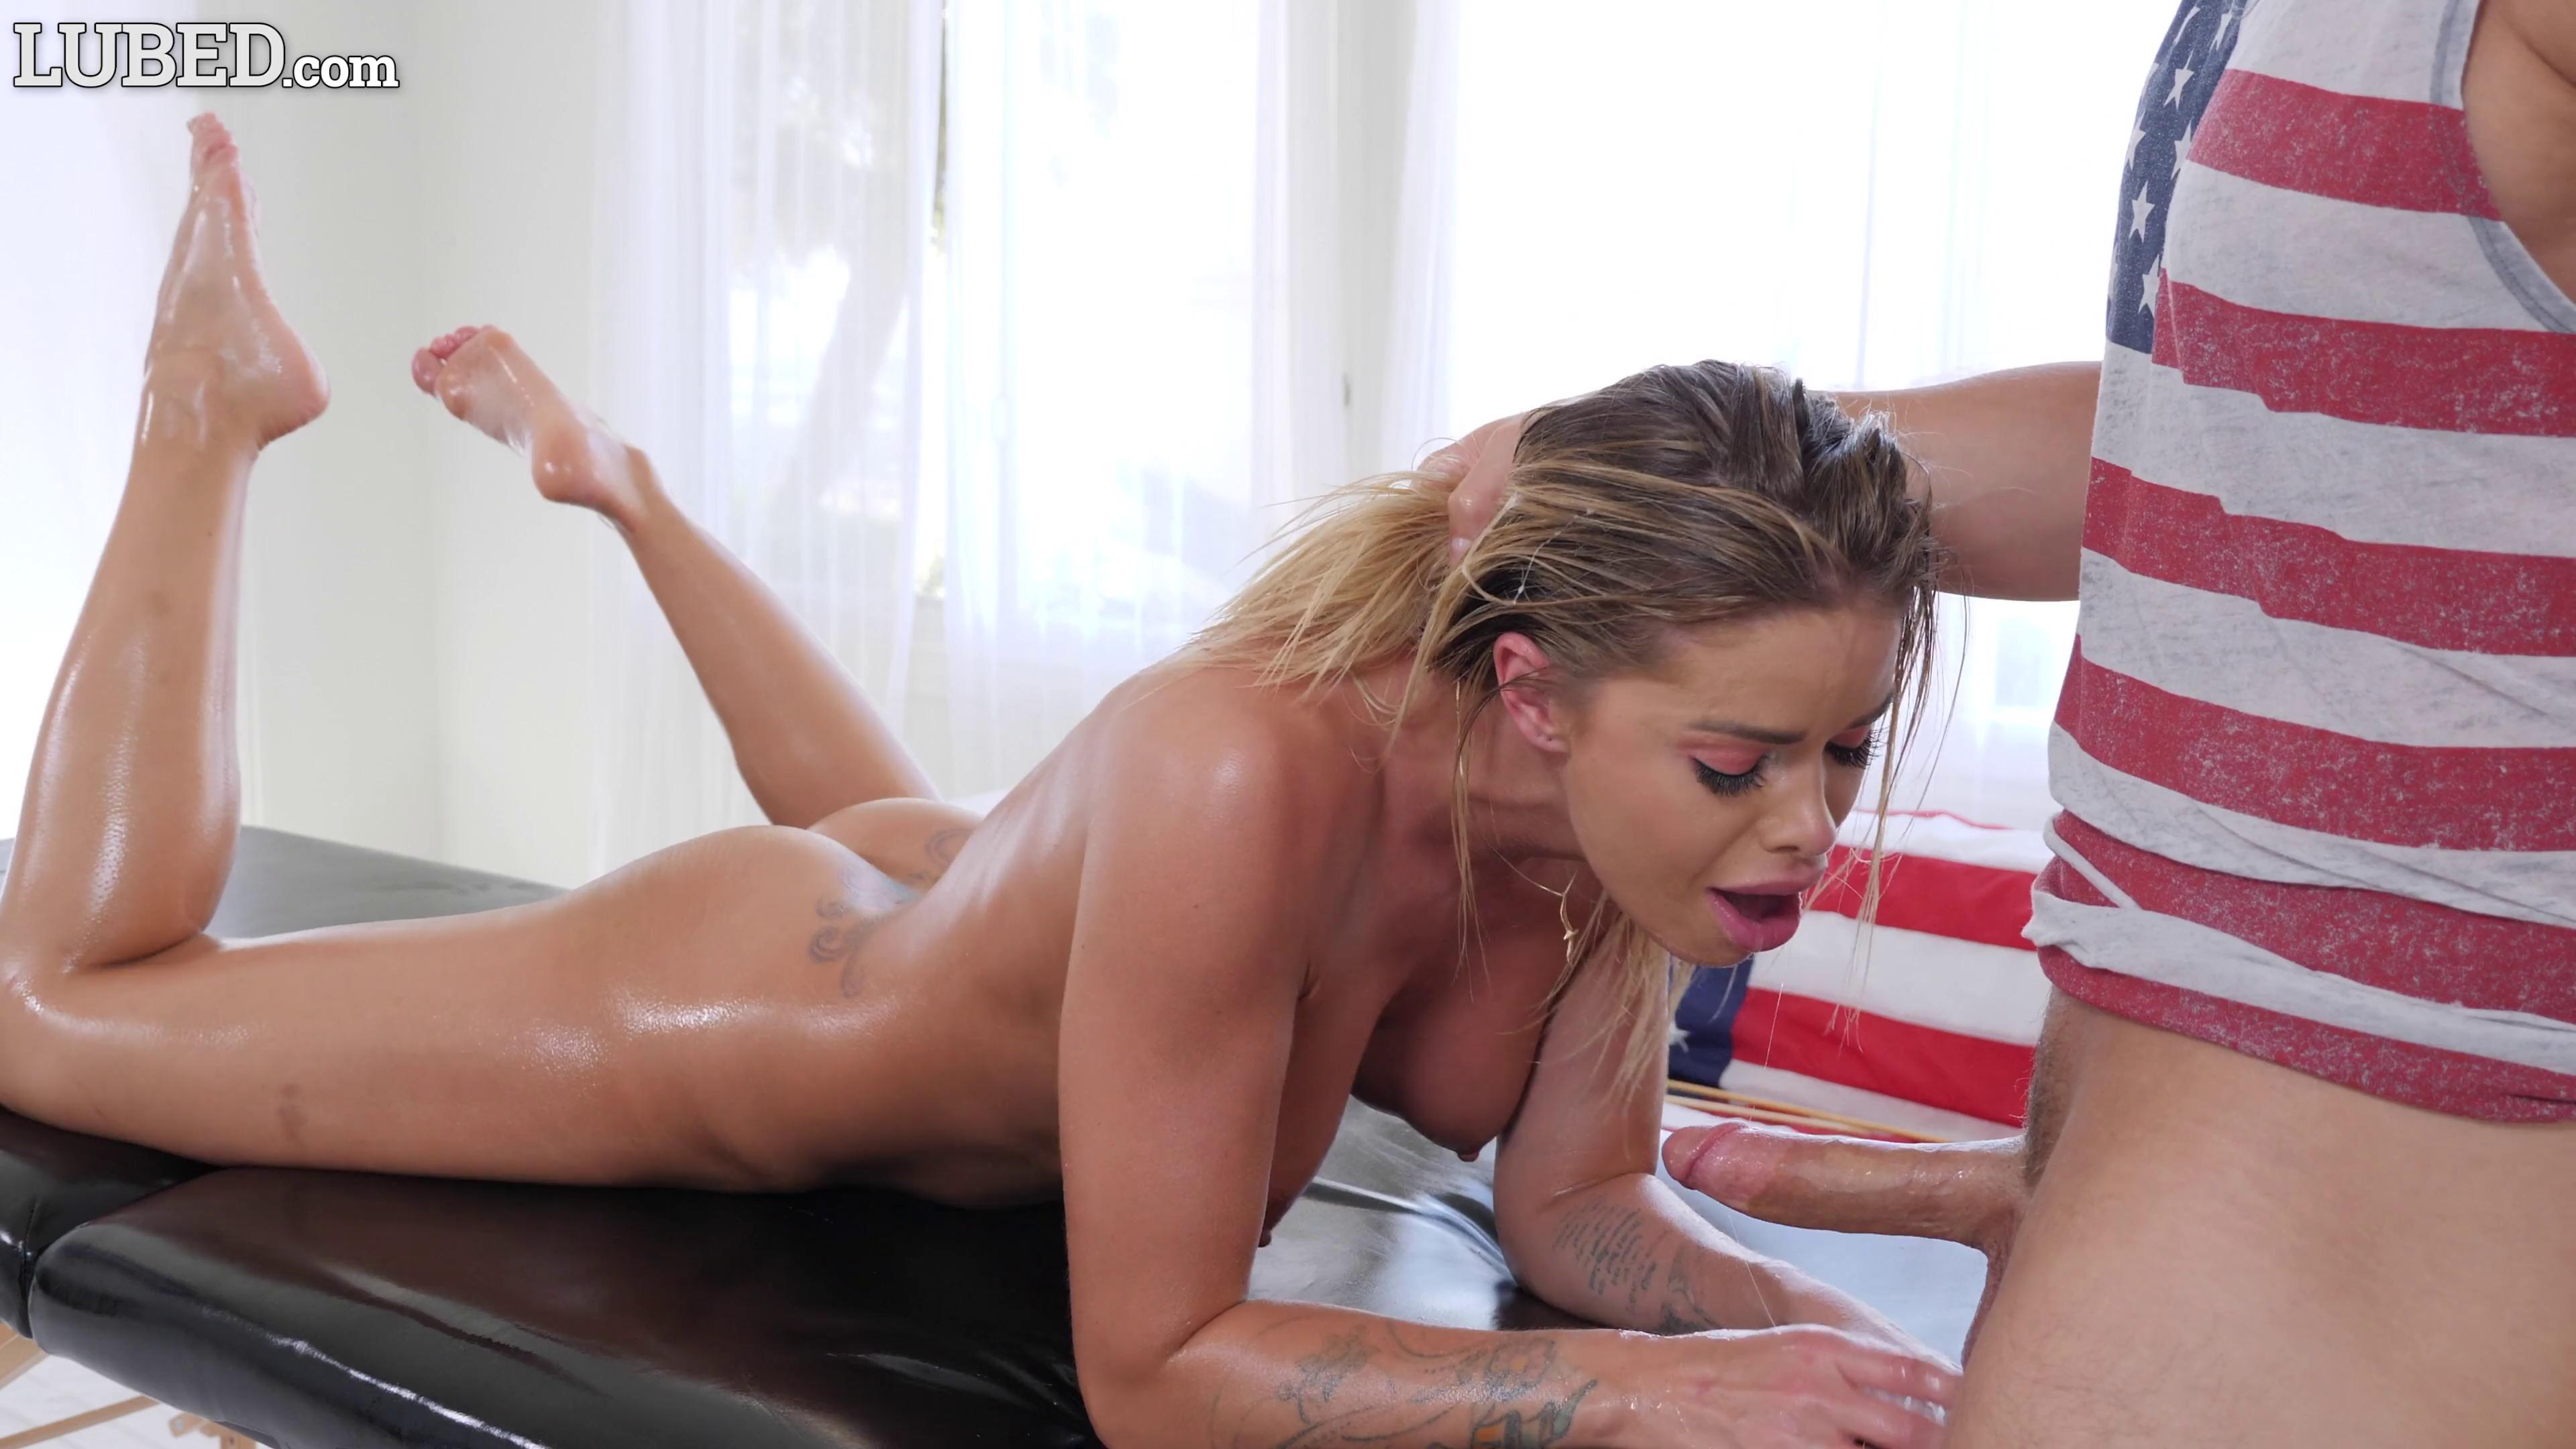 Lubed – Jessa Rhodes Wet And Wild On Independence Day